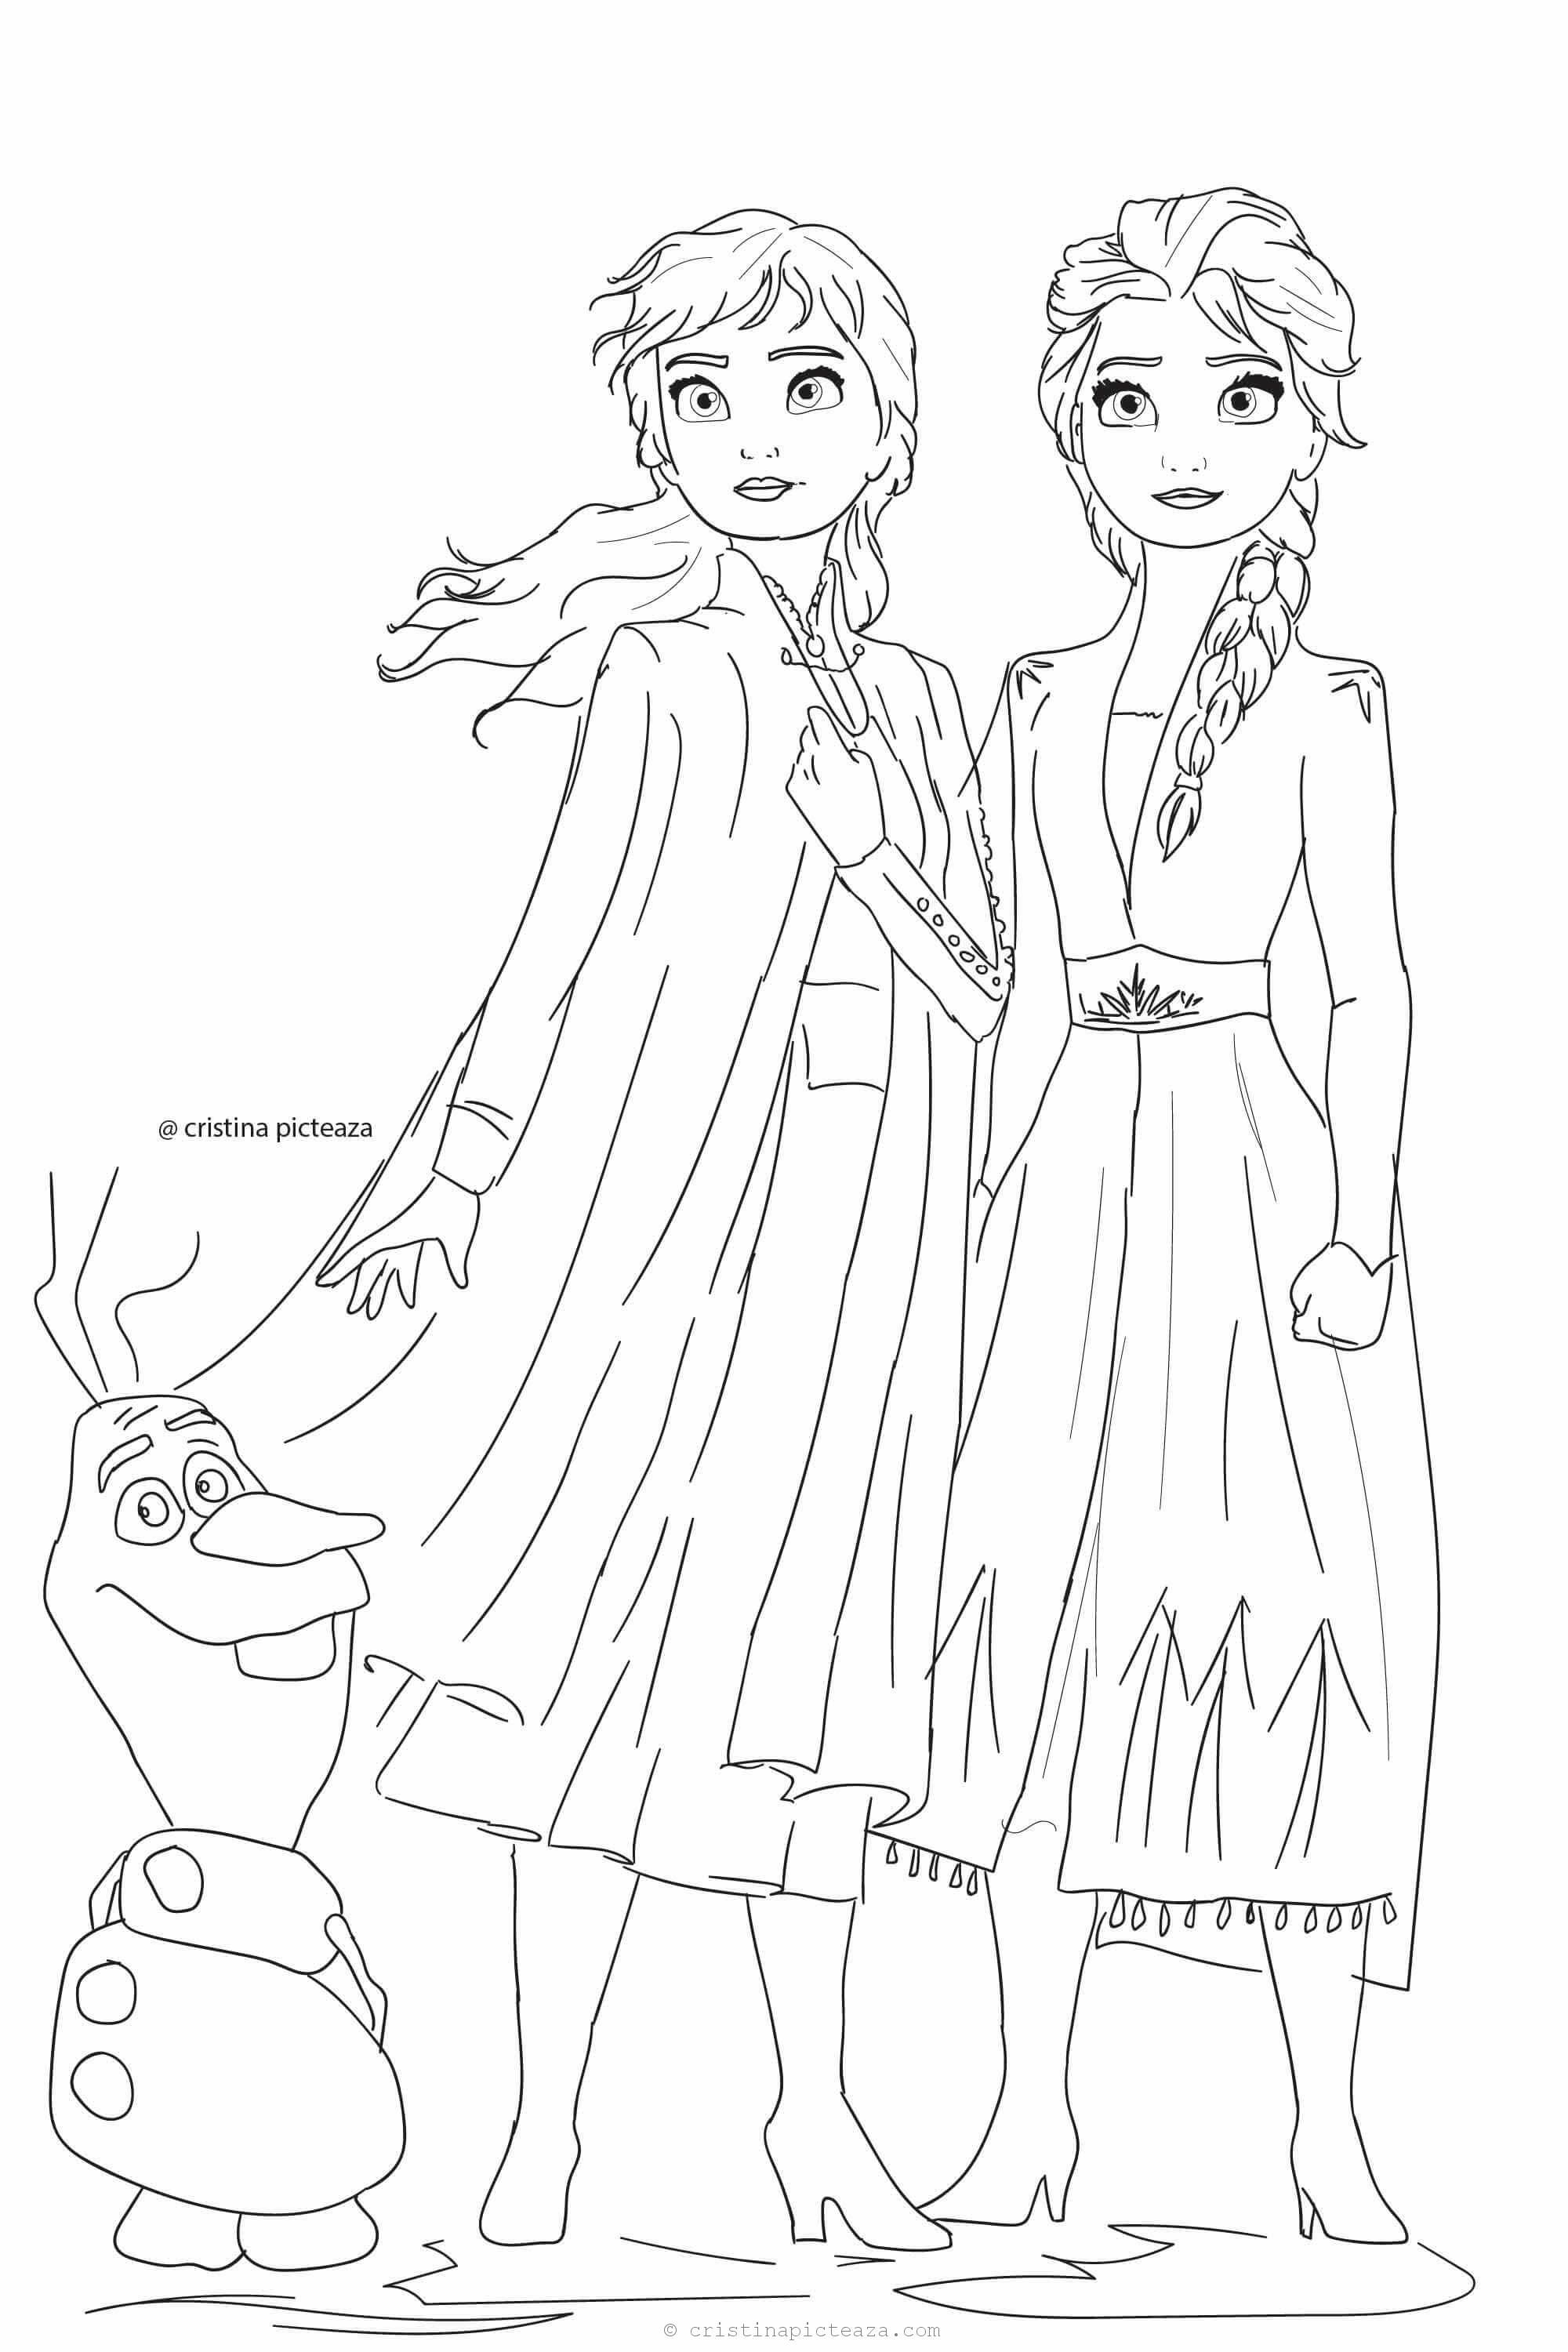 Frozen 2 Coloring Pages Ana In 2020 Princess Coloring Pages